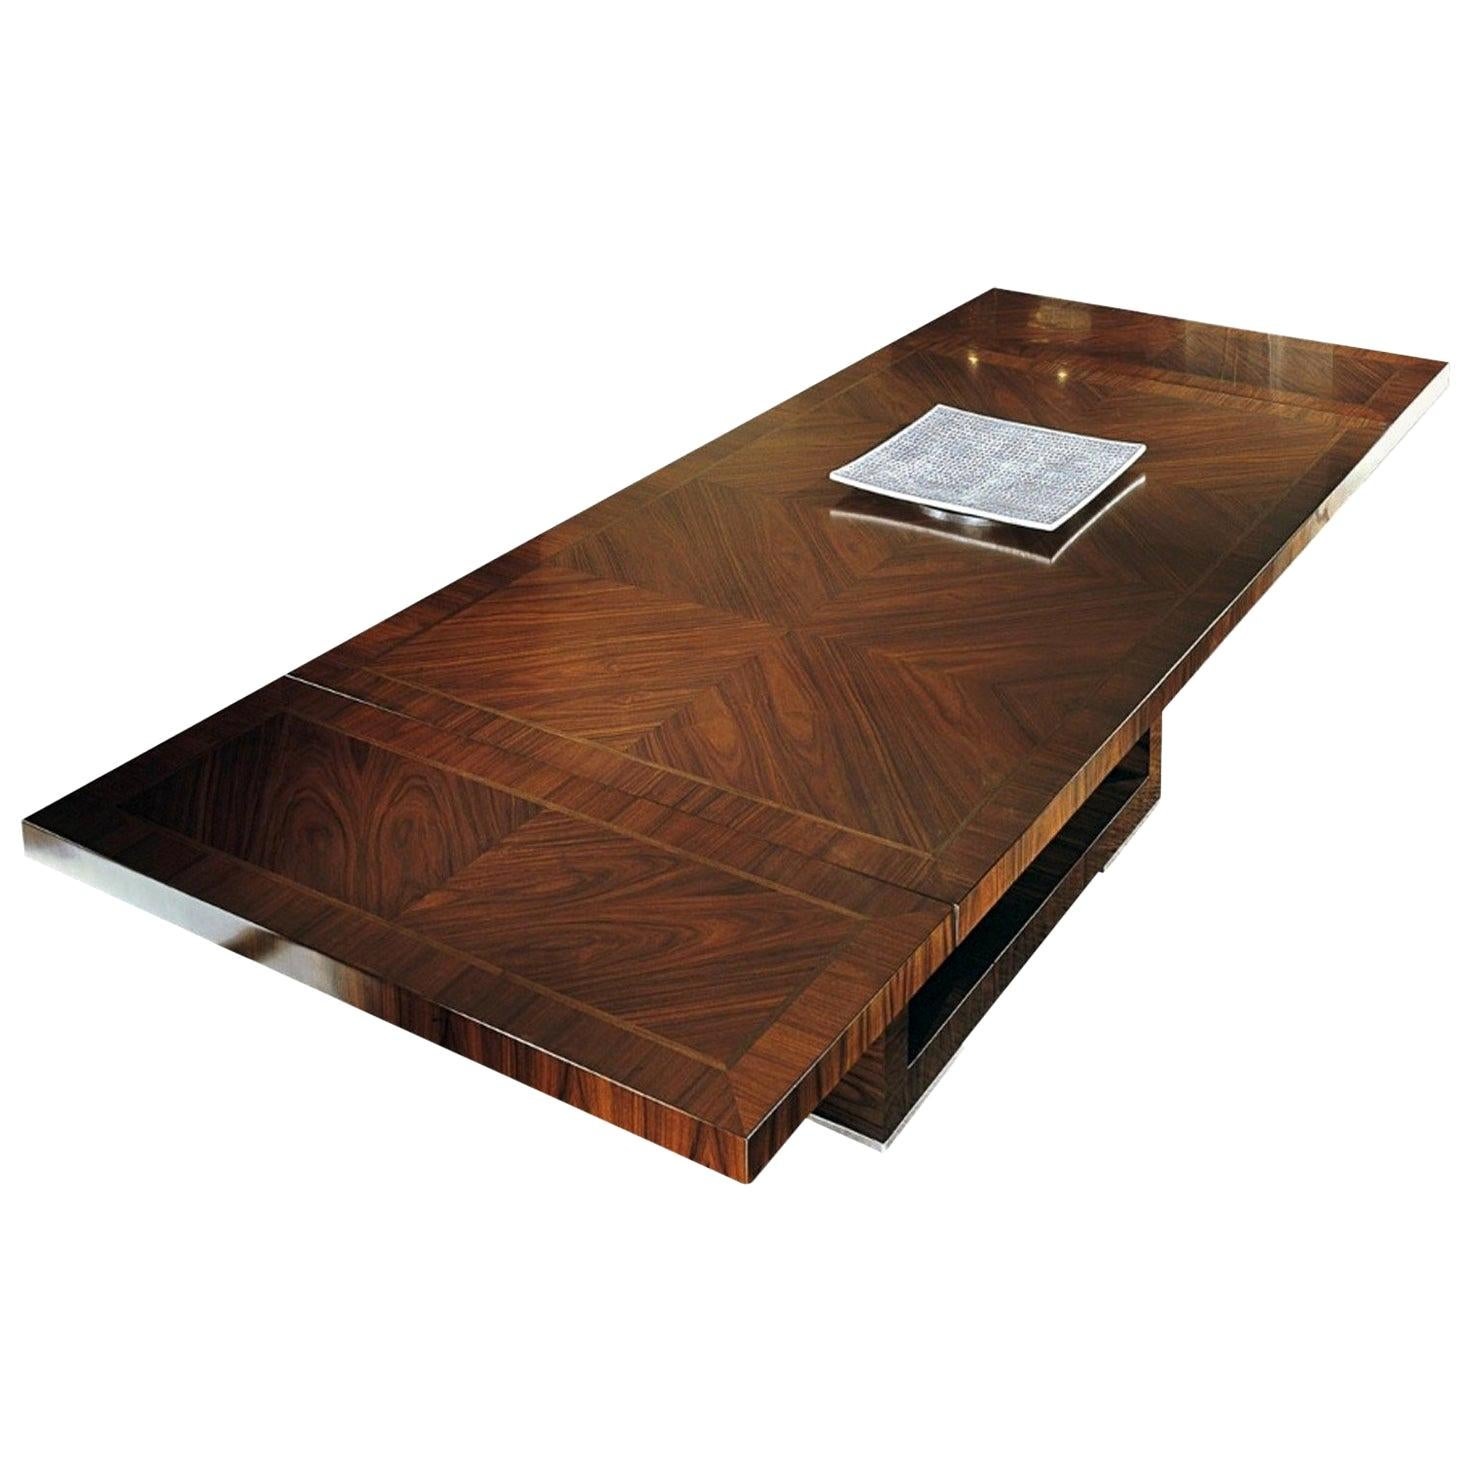 Giorgio Collection Brazilian Rosewood Dining Table in Satin Finish